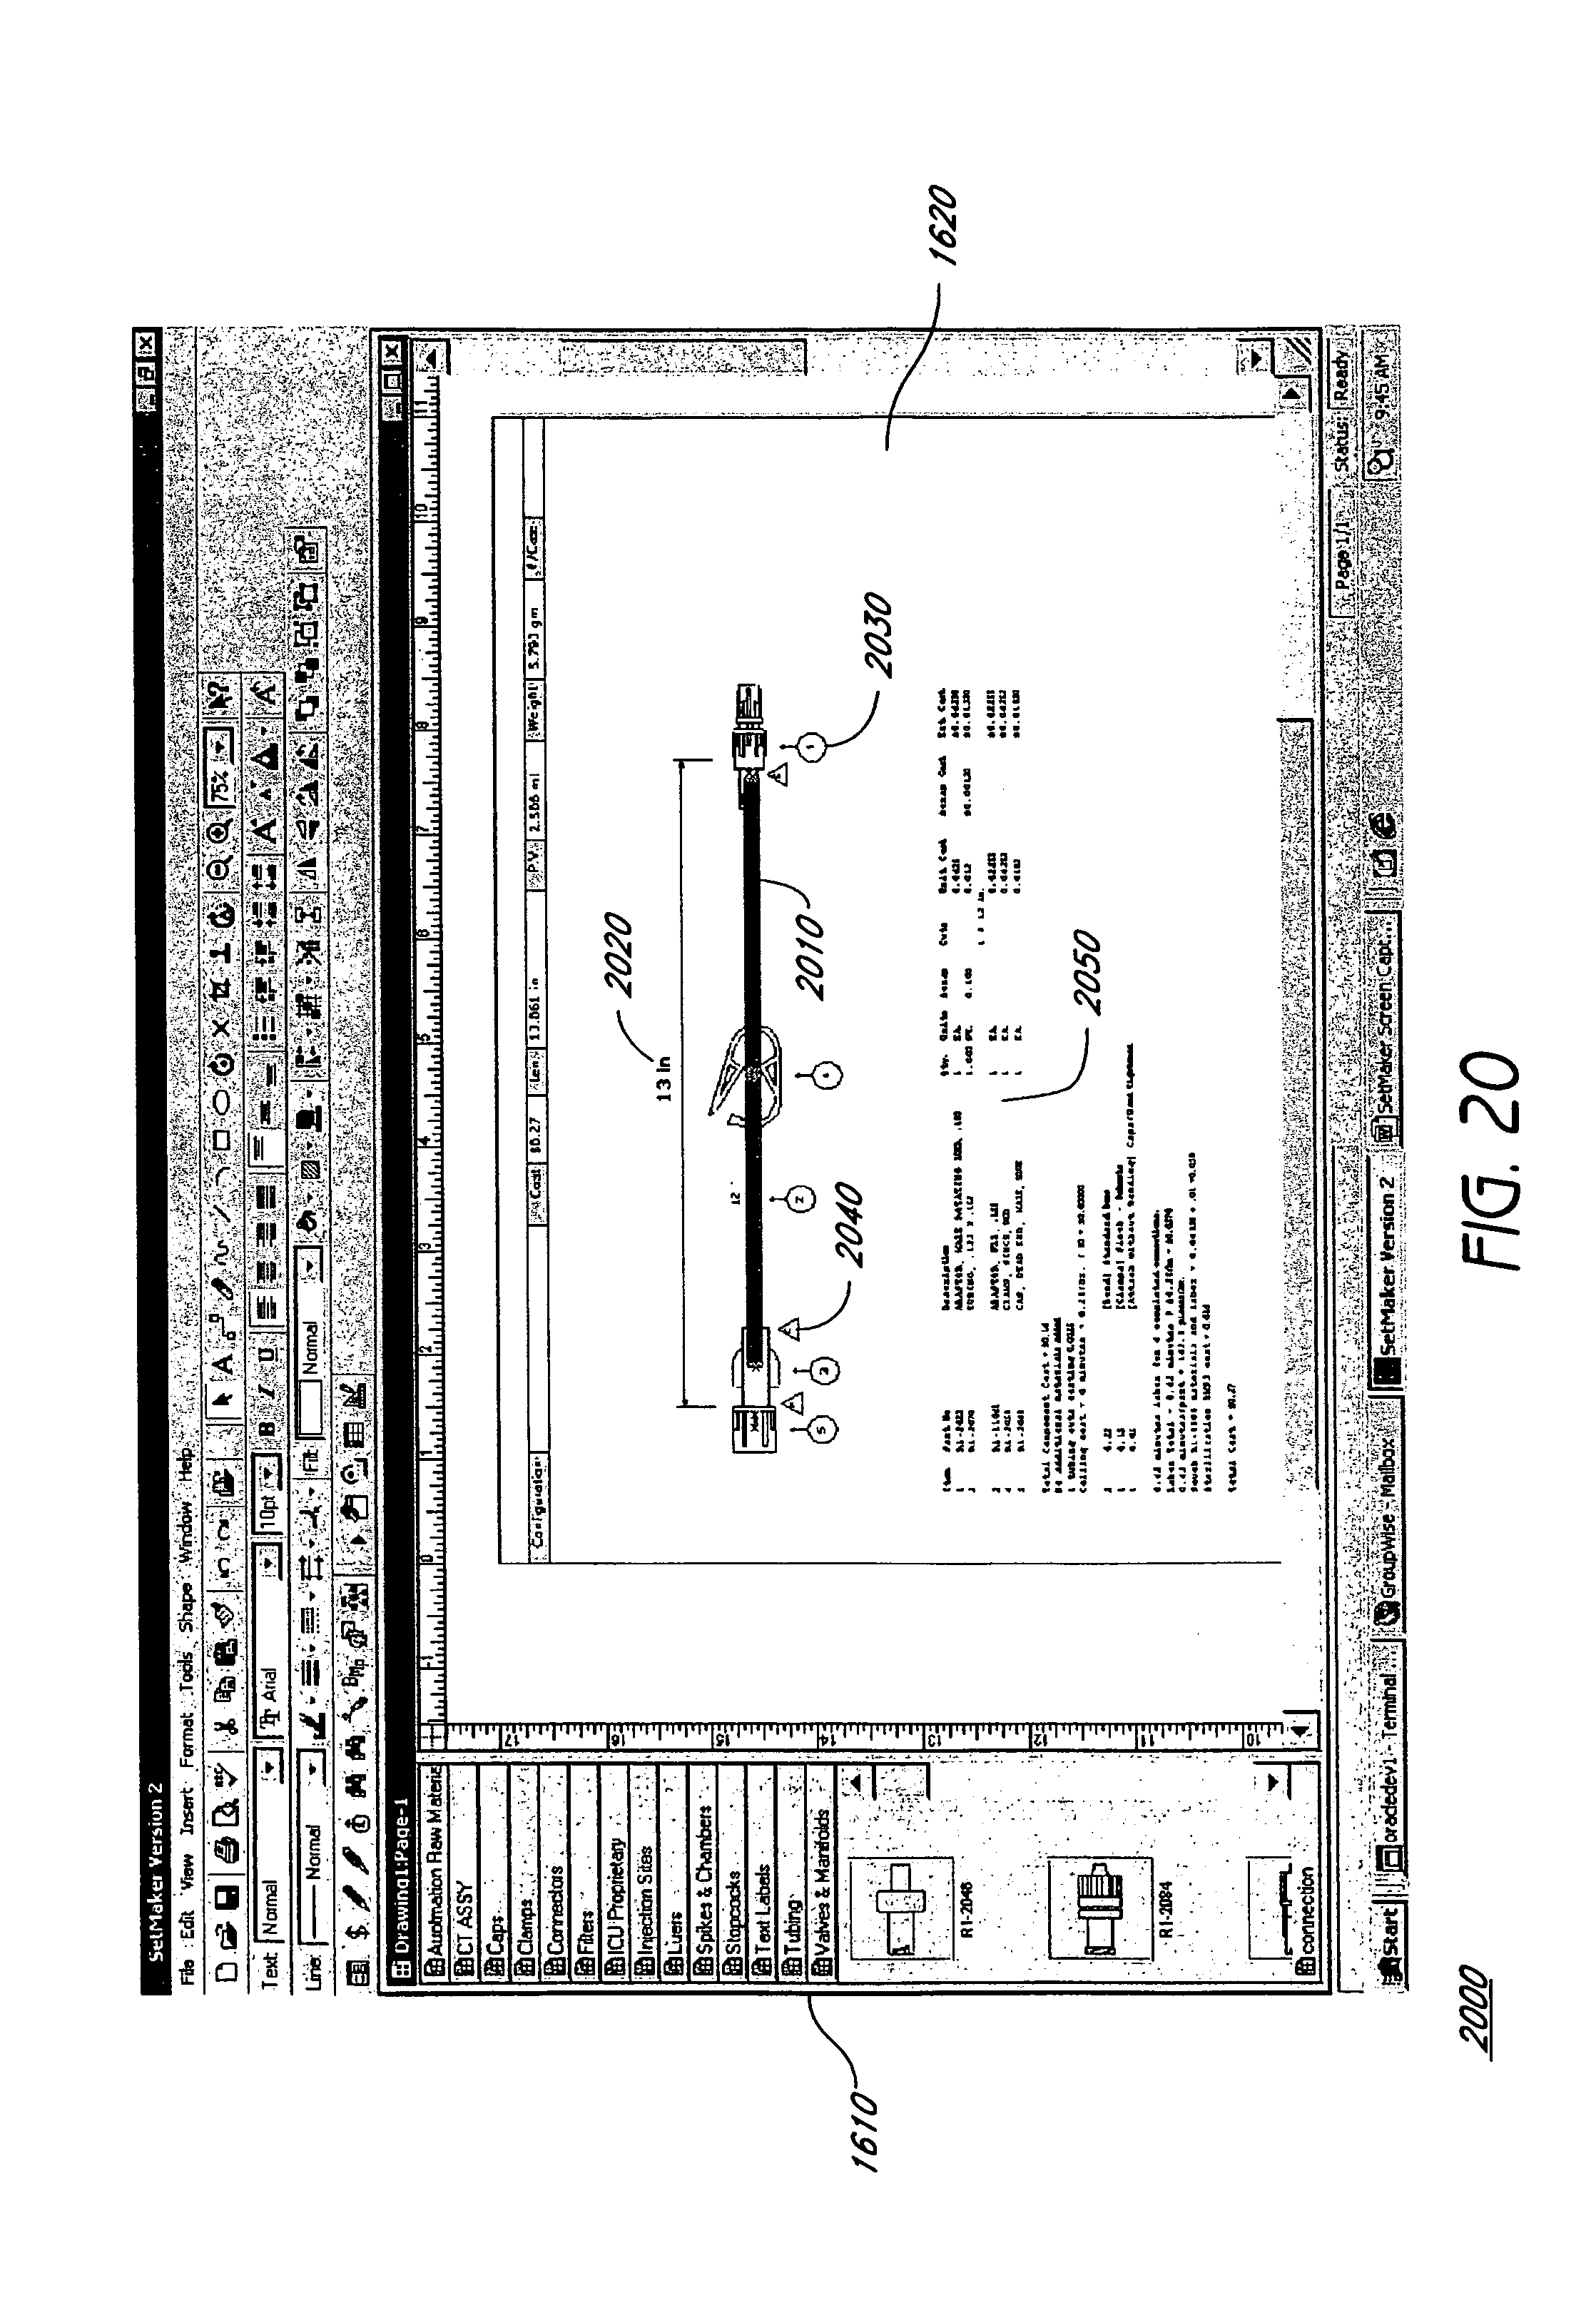 Integrated Regulatory Circuit Download Wiring Diagrams Ogo Diagram Patent Us20060271219 Computer System For Efficient Board Schematic